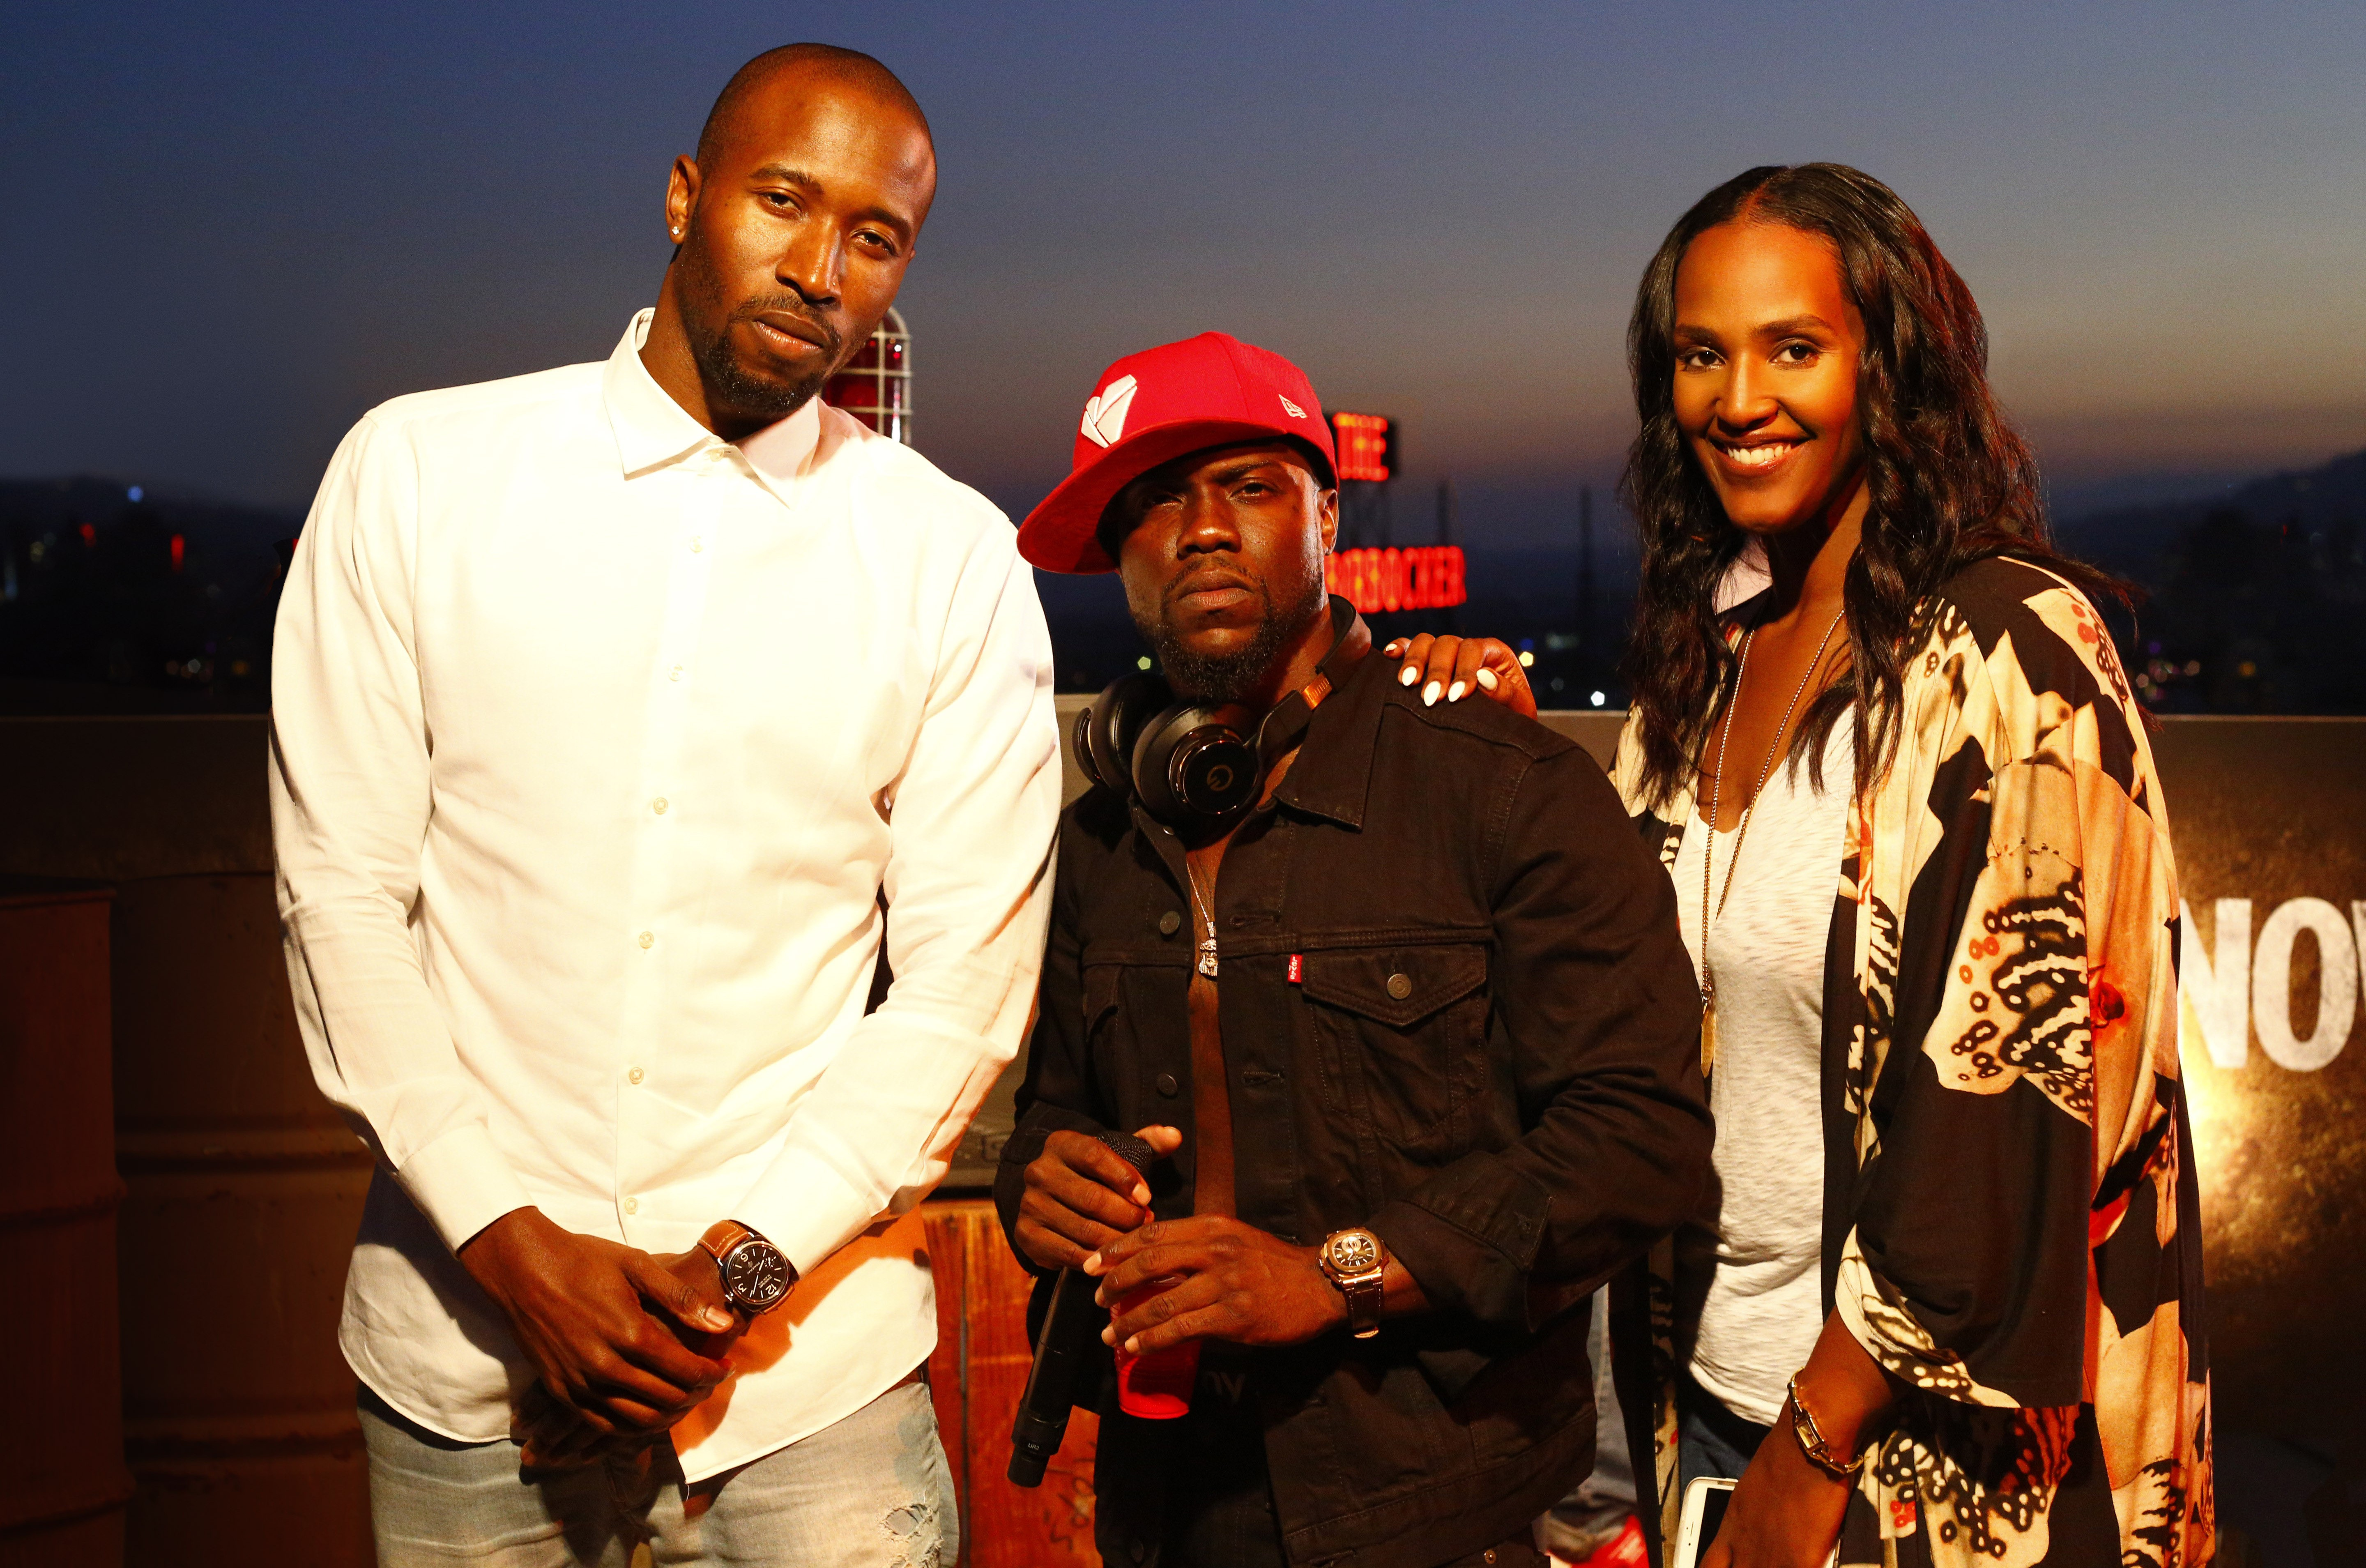 Motown Records Senior VP of A&R Ezekiel Lewis, Chocolate Droppa and Motown president Ethiopia Habtemariam